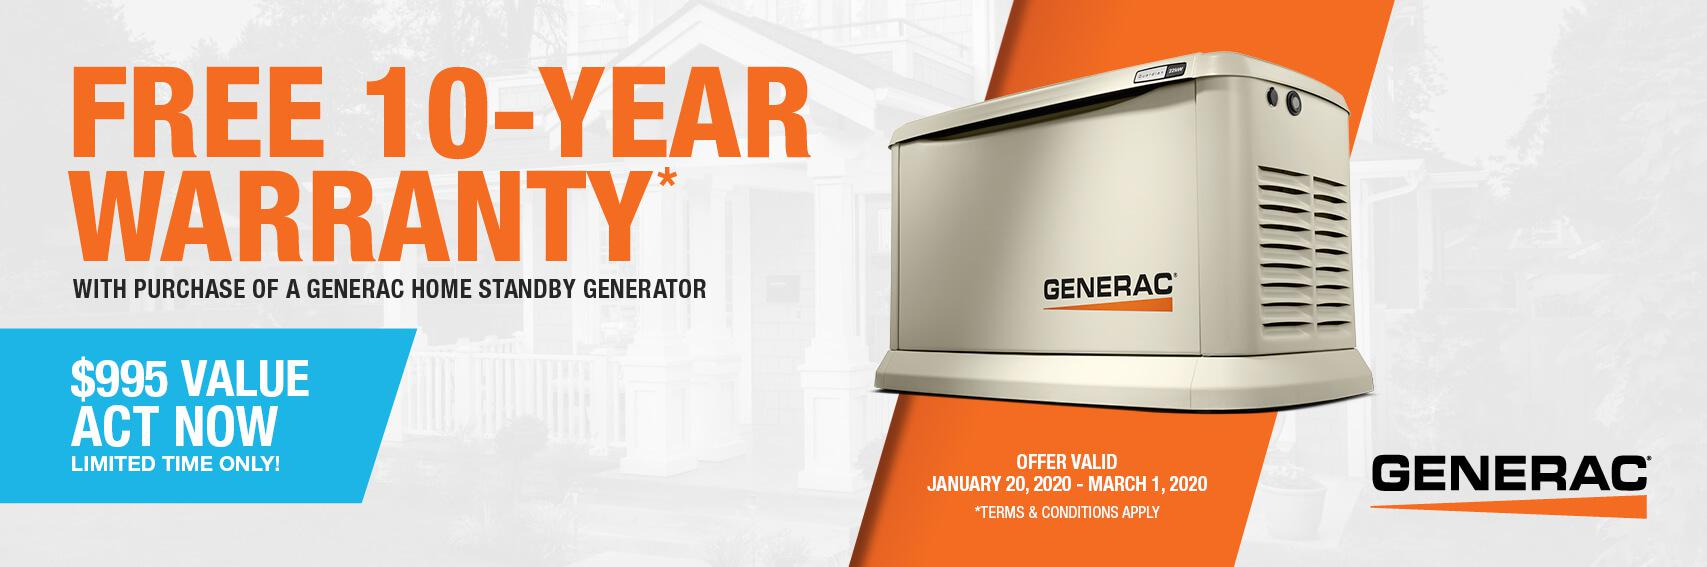 Homestandby Generator Deal | Warranty Offer | Generac Dealer | Sherwood, AR